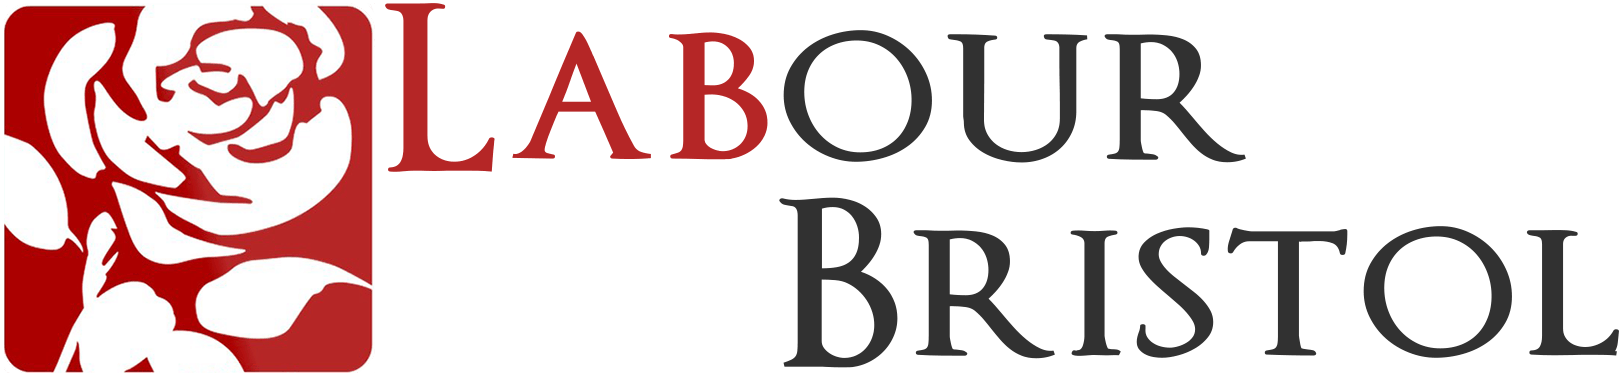 cropped-labourbristol.png